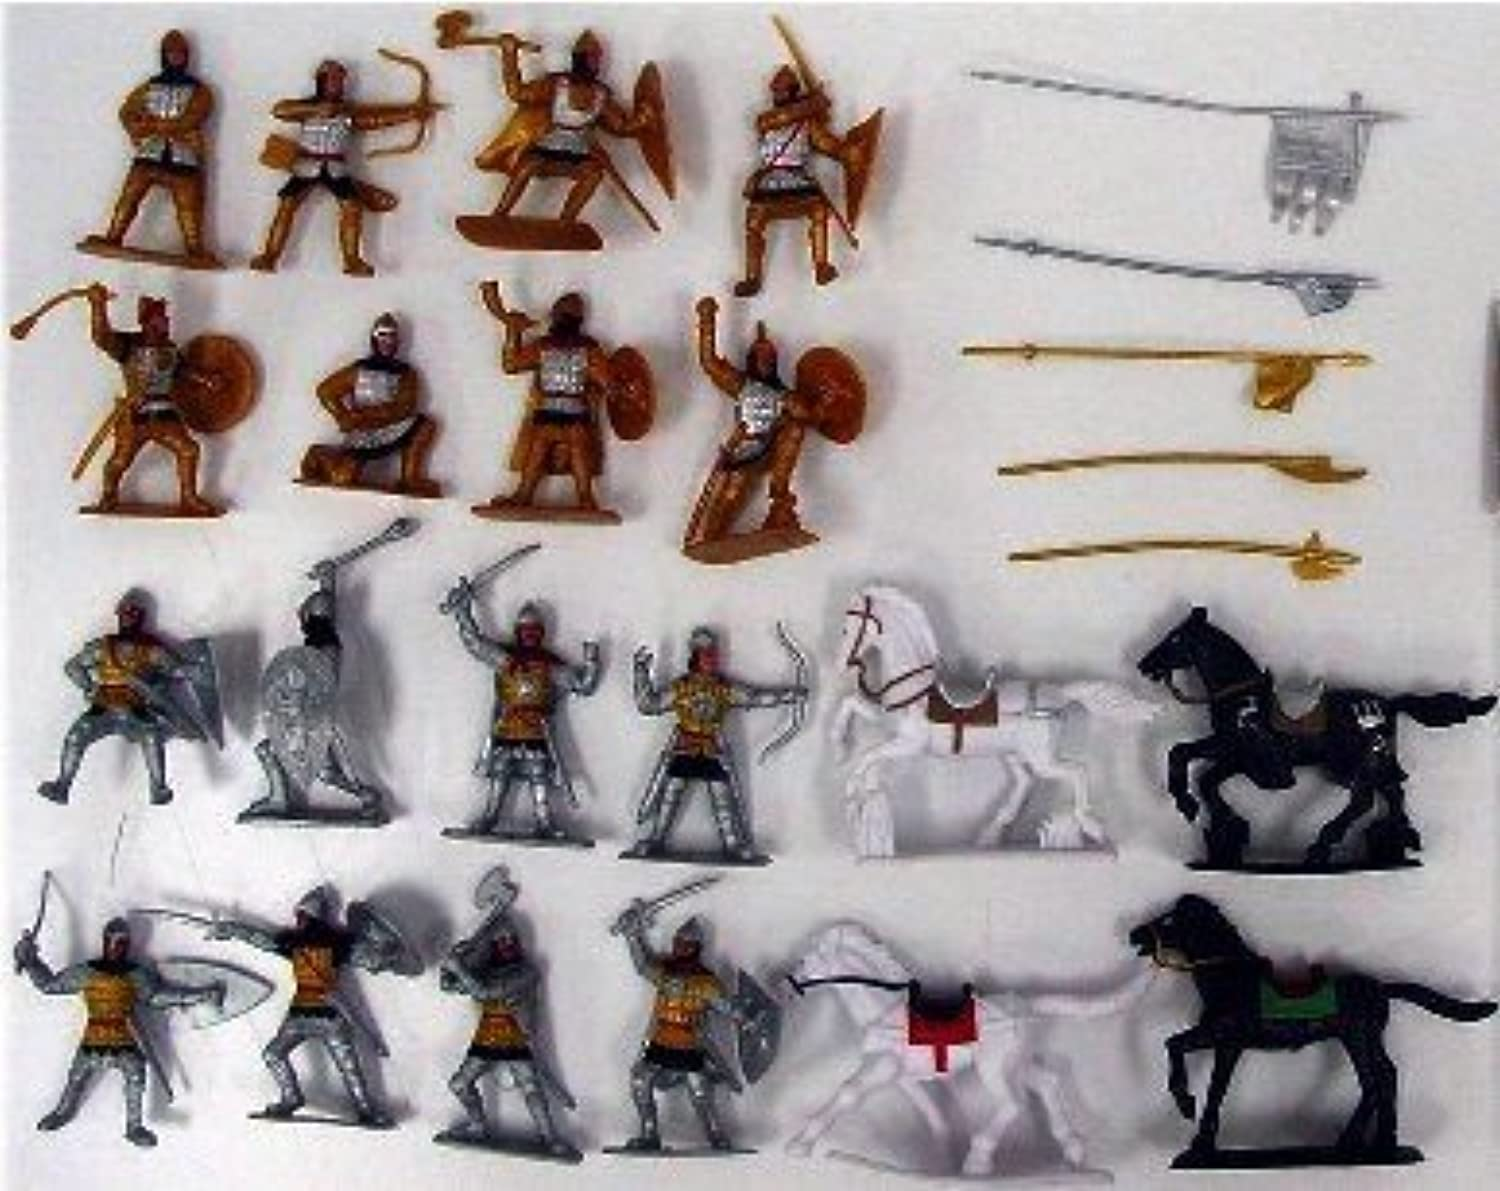 Russian Knights Playset (16 Figures w Weapons & 4 Horses) (Bagged) 1 32 Playsets by Playsets